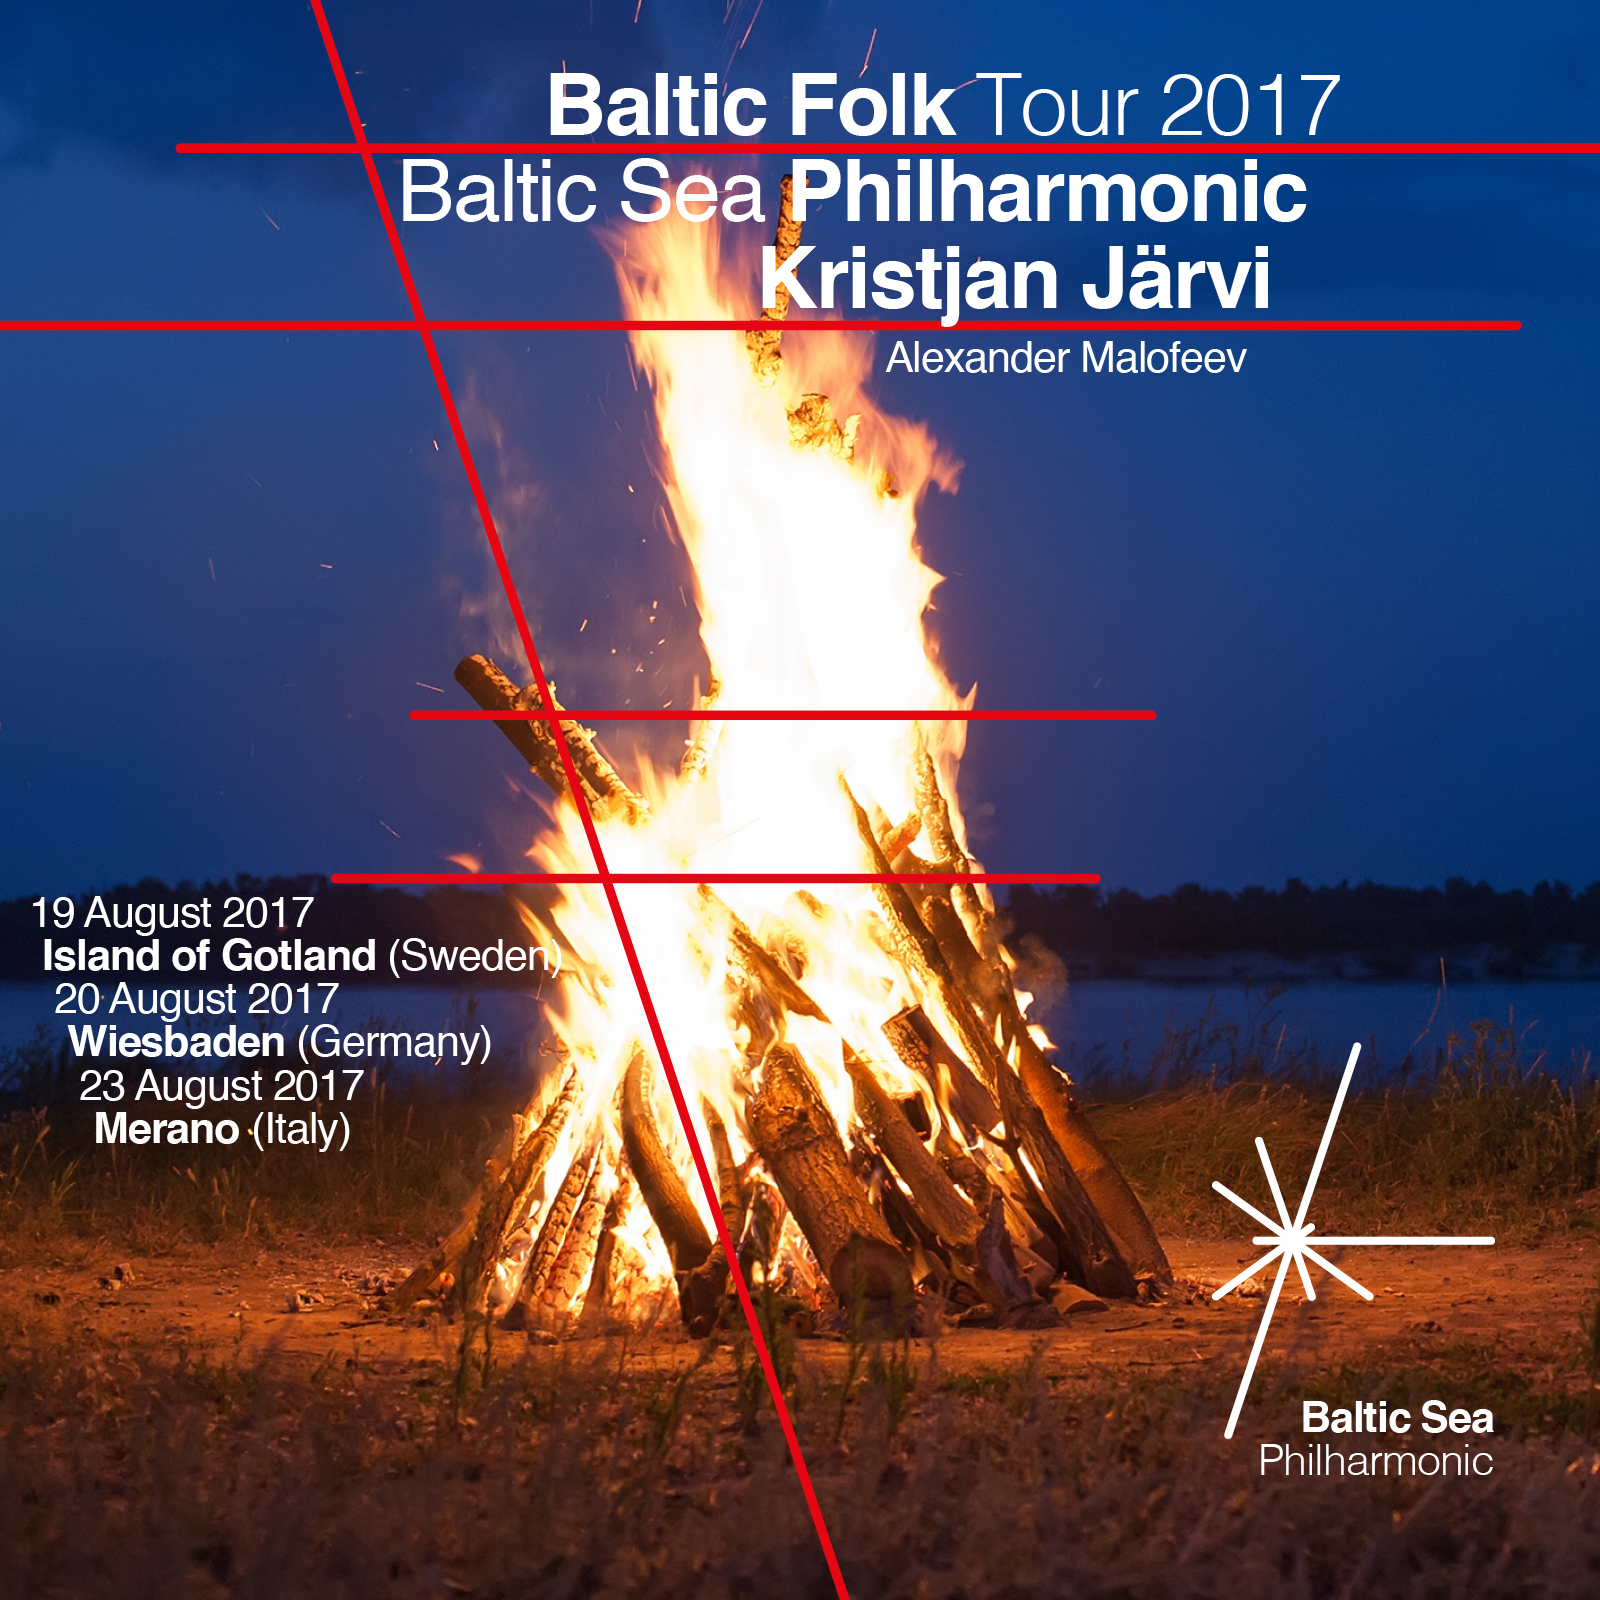 http://blog.baltic-sea-philharmonic.eu/wp-content/uploads/BMEF_Baltic-Folk_Digital-Poster_eng_2017.jpg